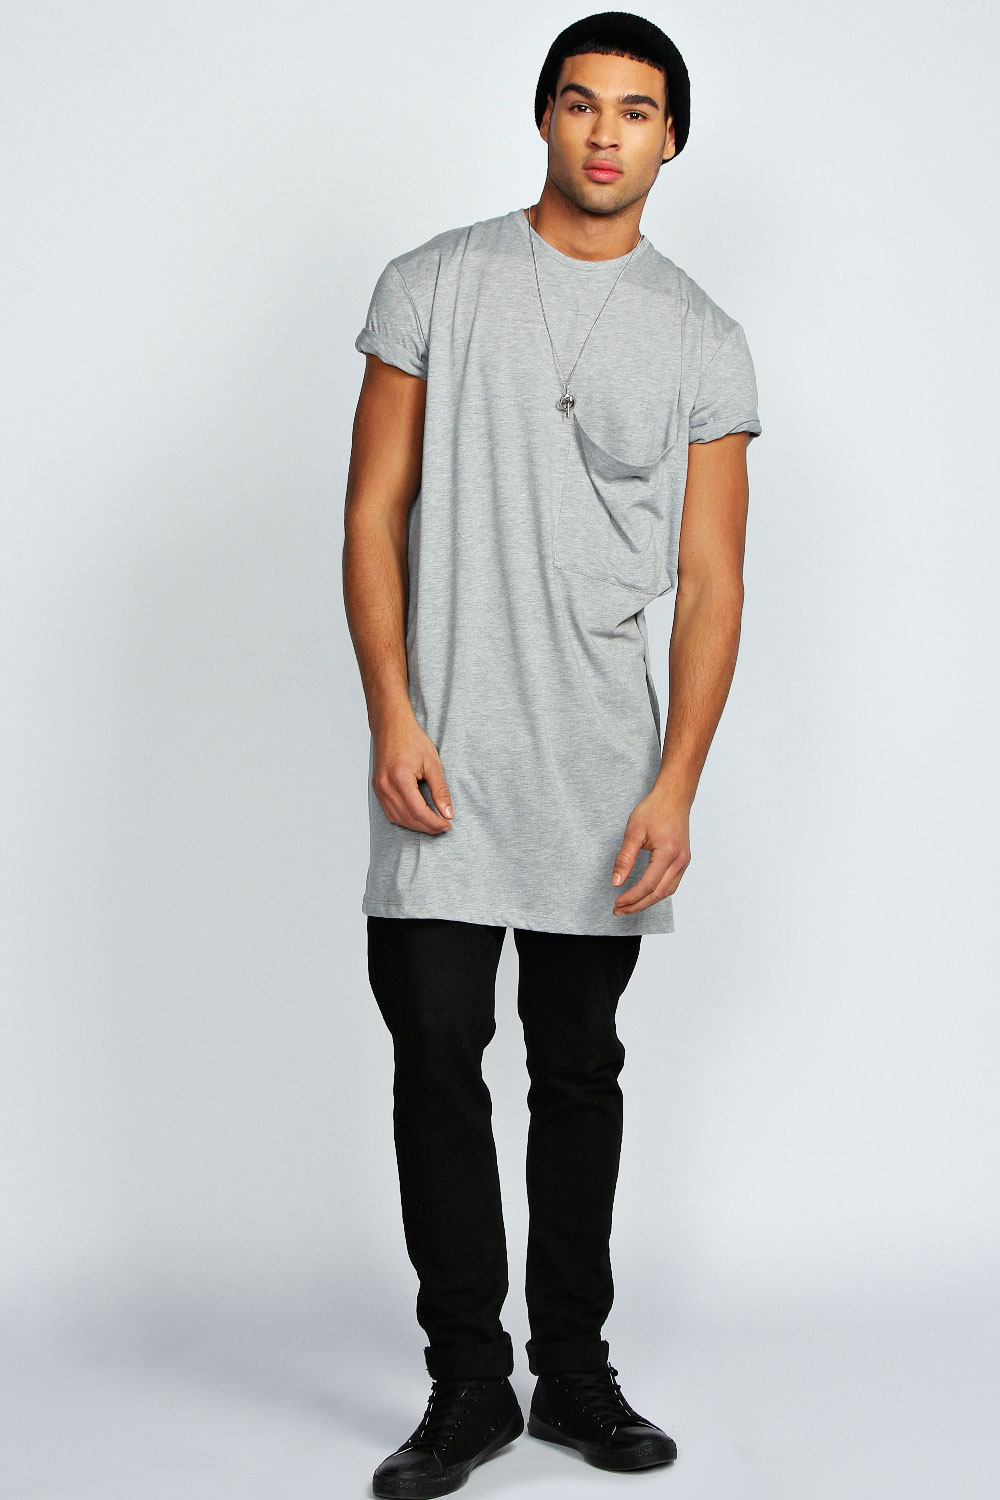 mens oversized pocket long line 100 cotton tee top t shirt ebay. Black Bedroom Furniture Sets. Home Design Ideas